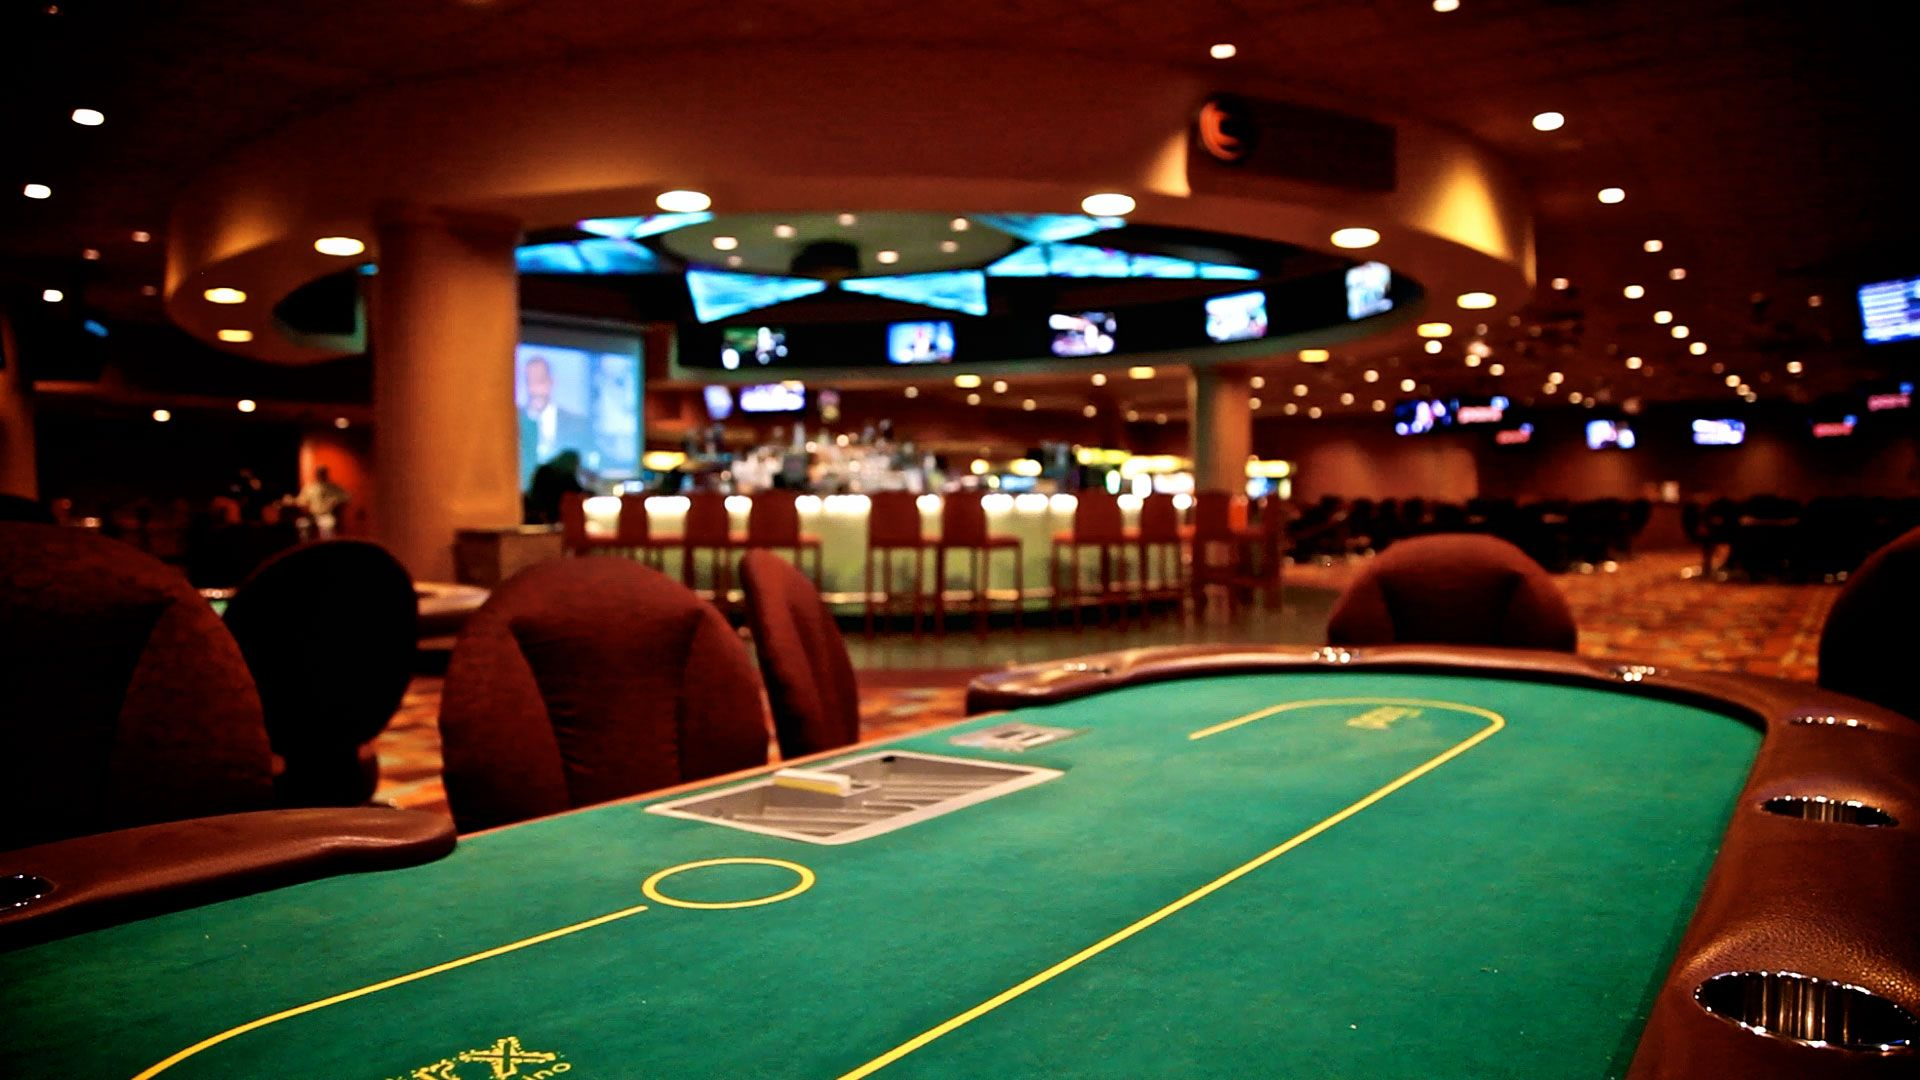 The bandarq online is the option with the most attractive professional players' benefits.